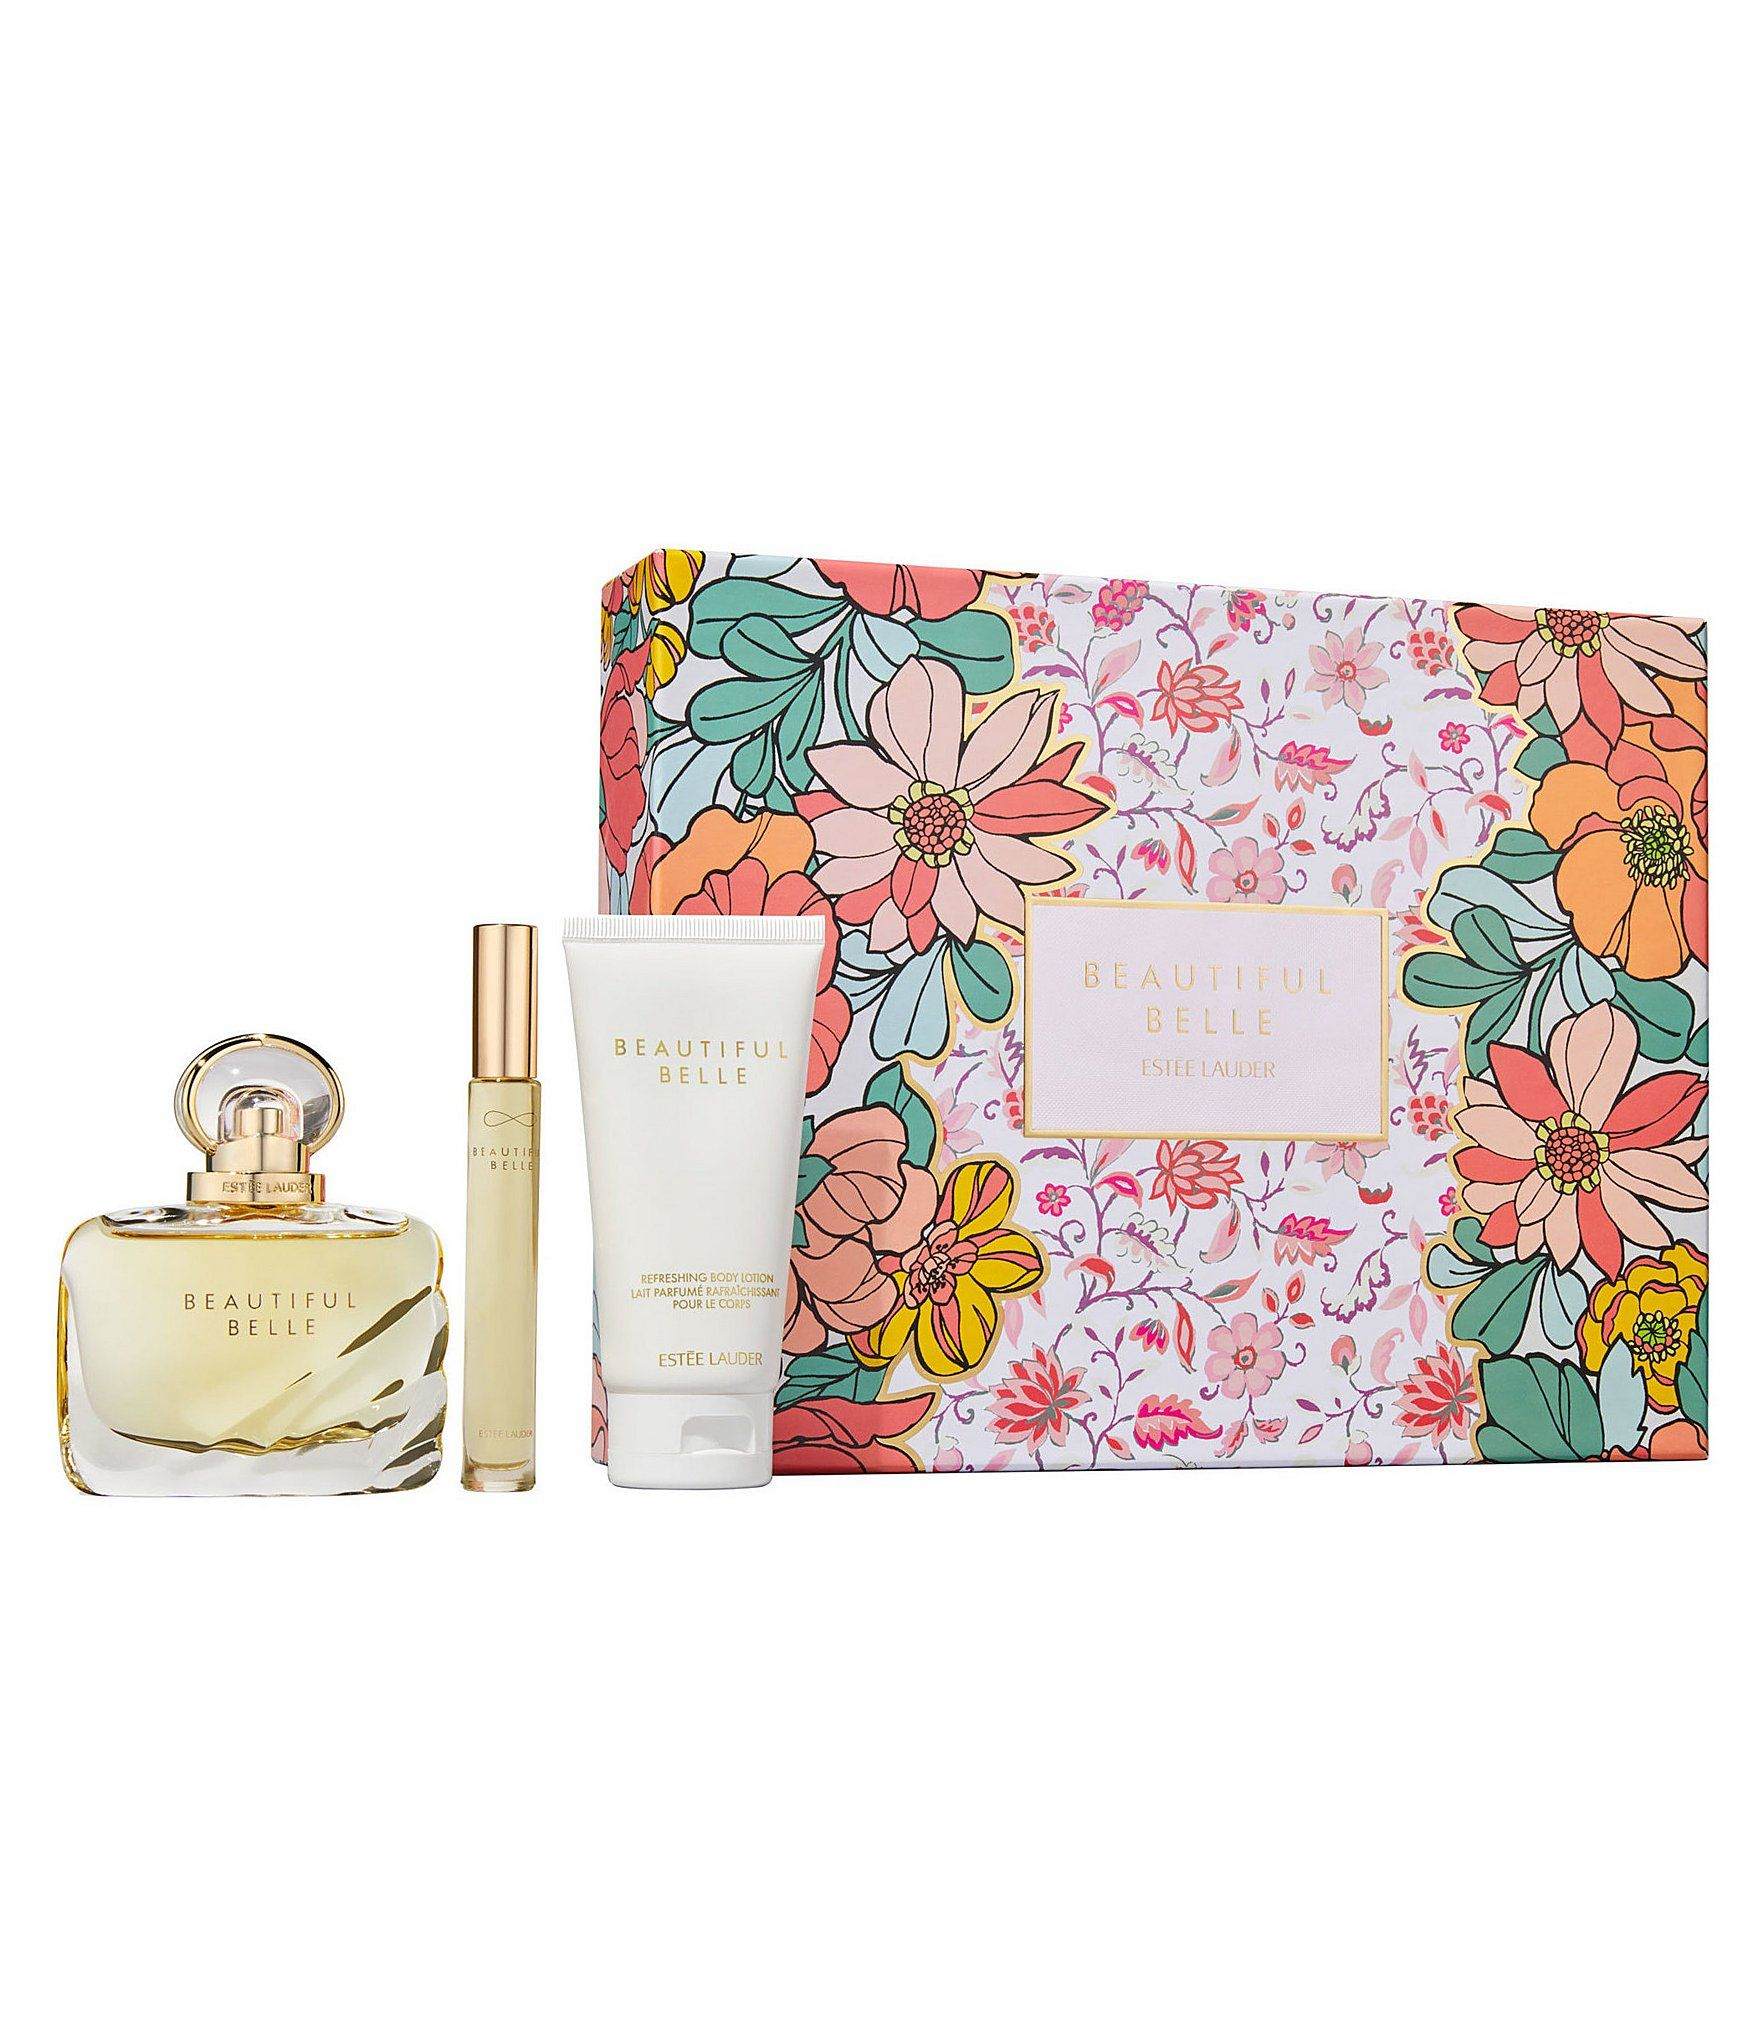 Estee Lauder Beautiful Belle Romantic Promises Gift Set